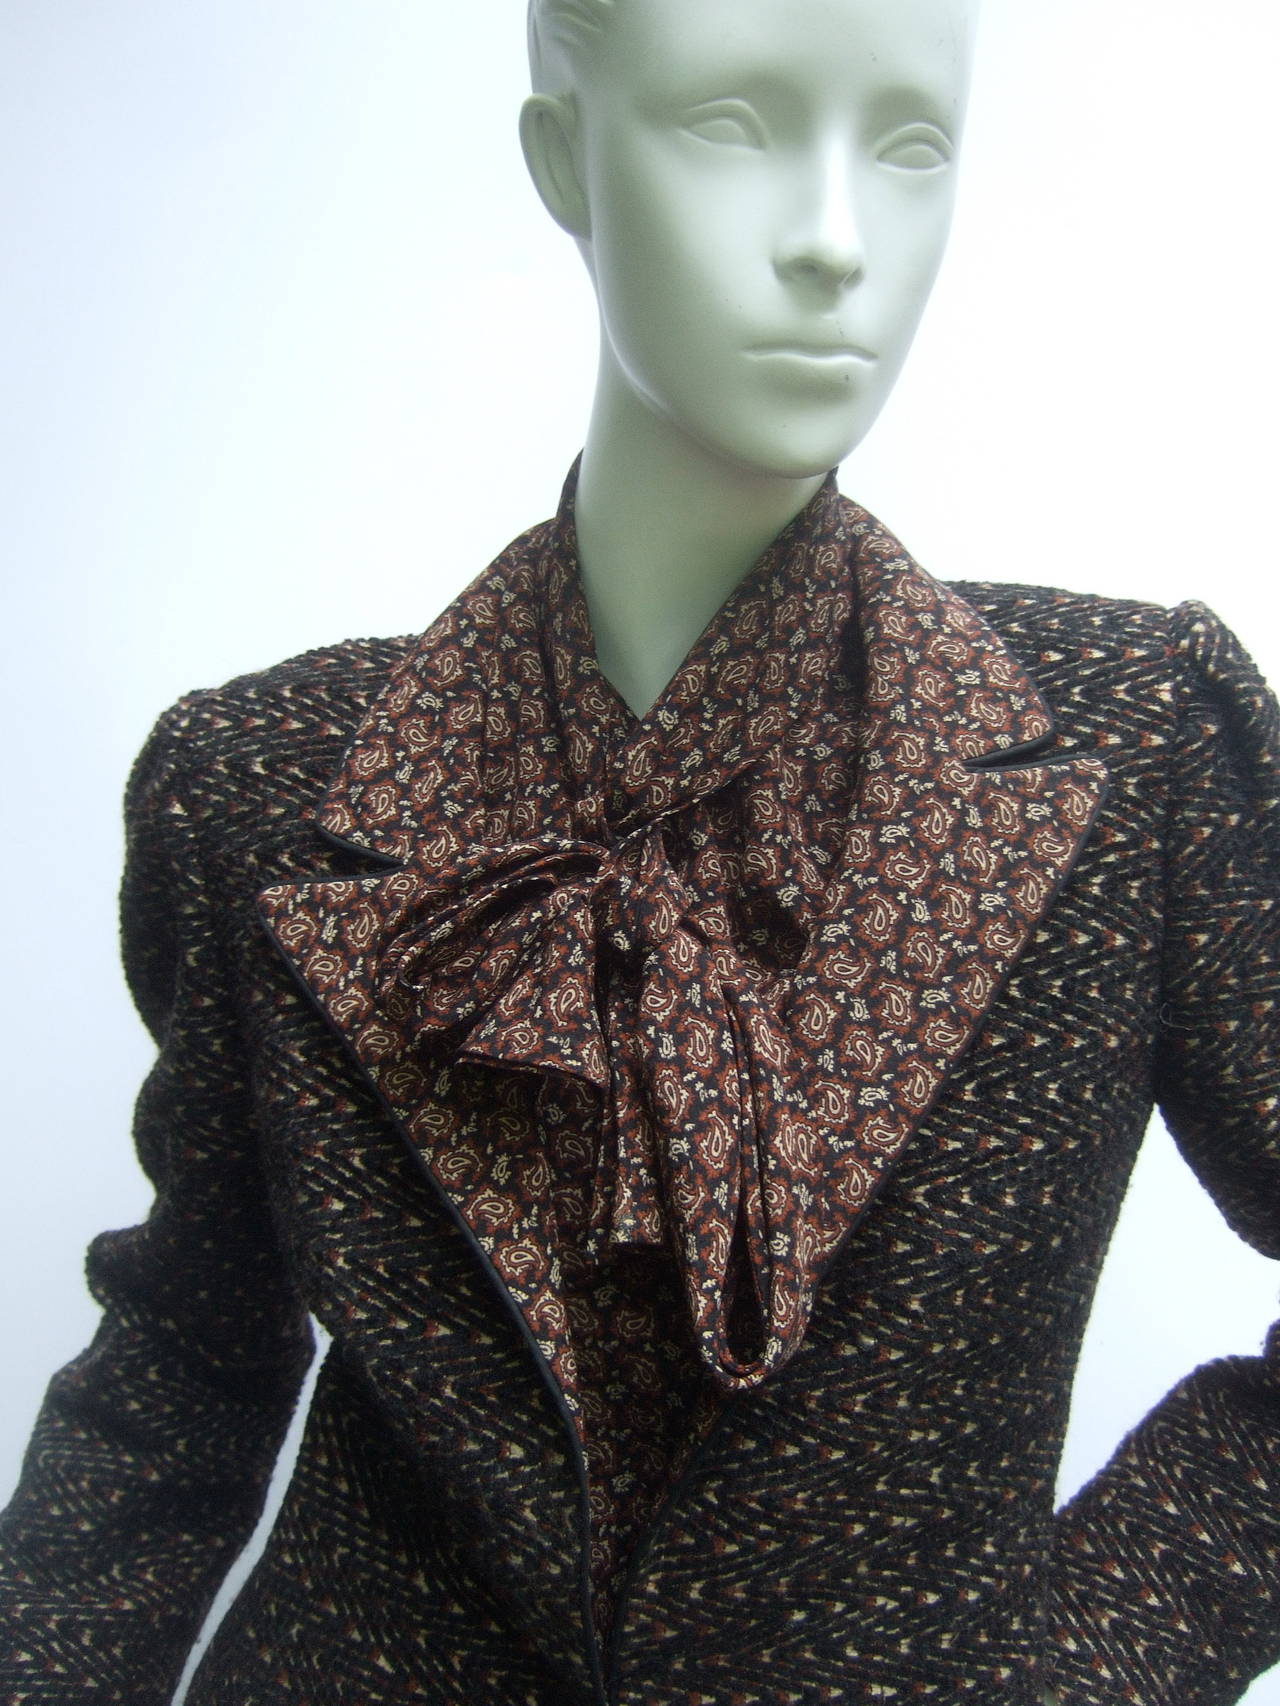 Lanvin Couture Paris Wool Jacket & Paisley Blouse Ensemble c 1980s 2